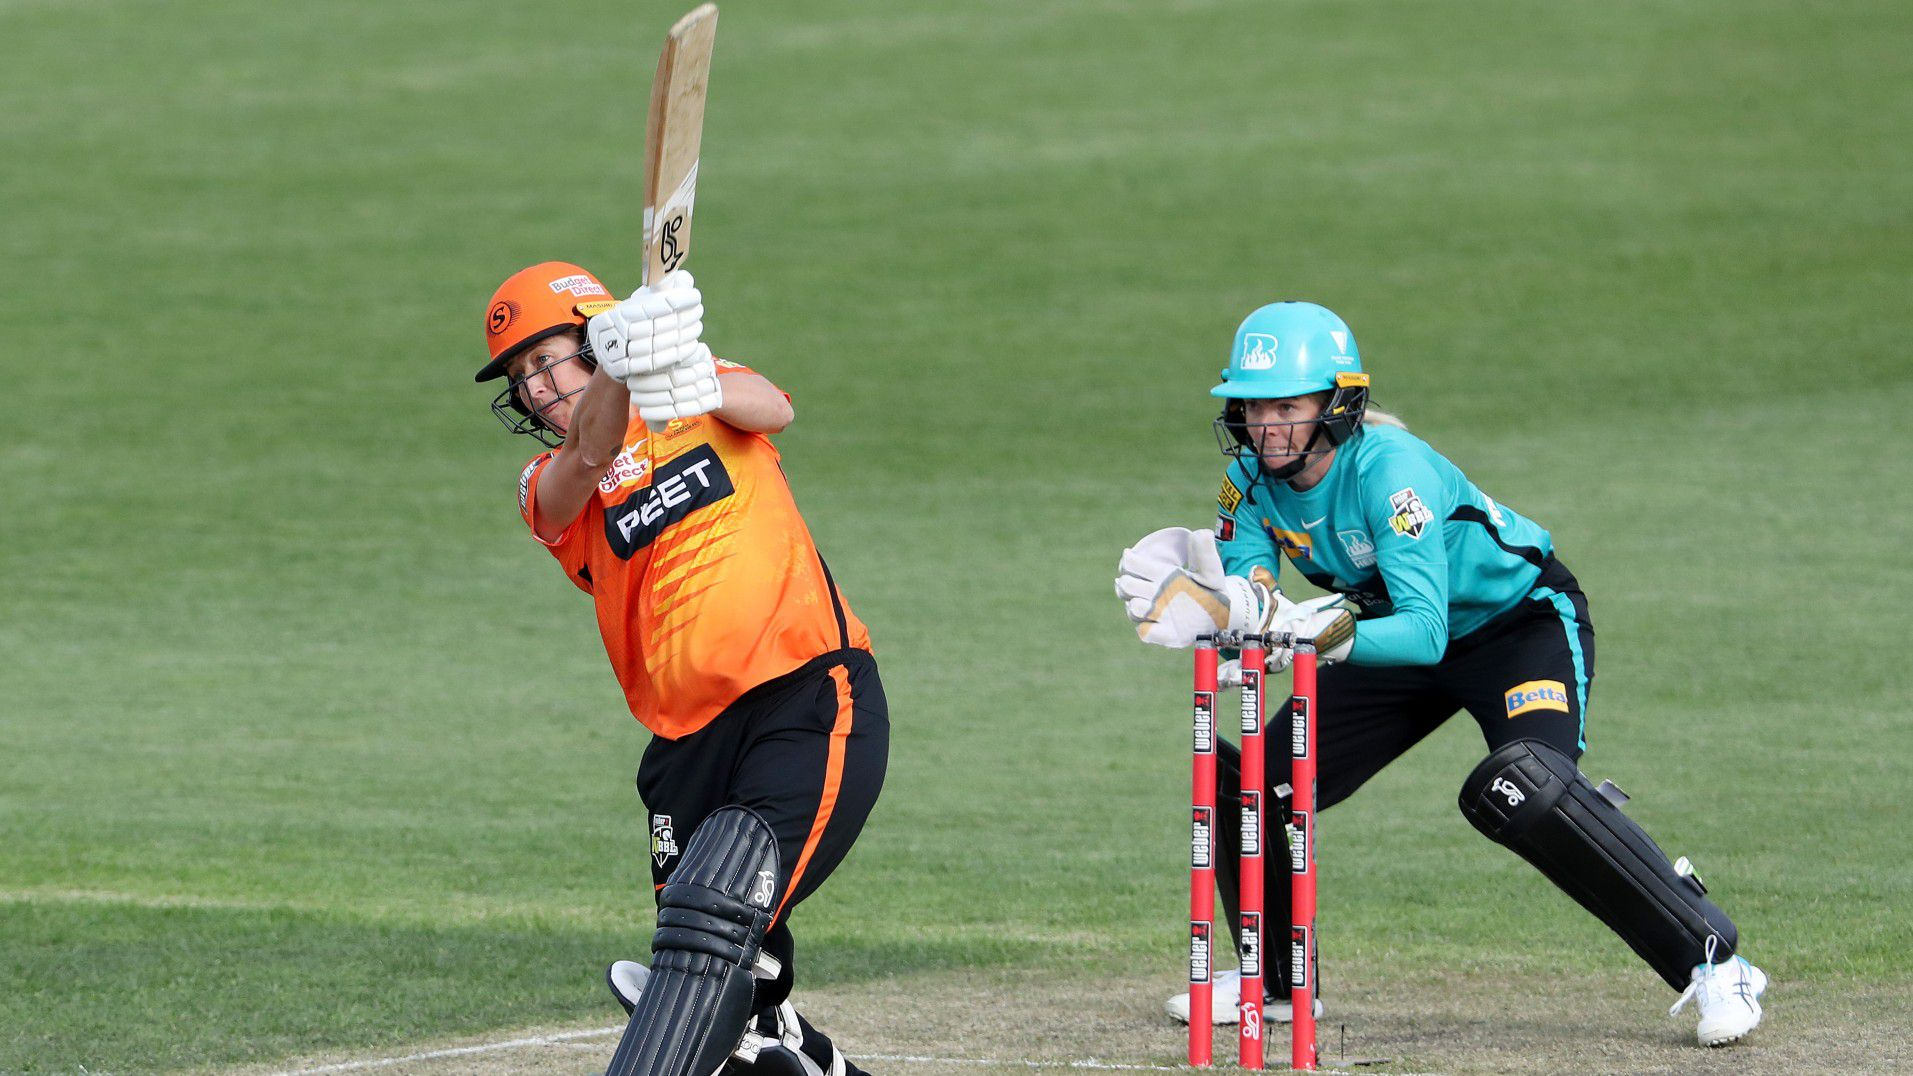 WBBL thriller ends in chaotic super over